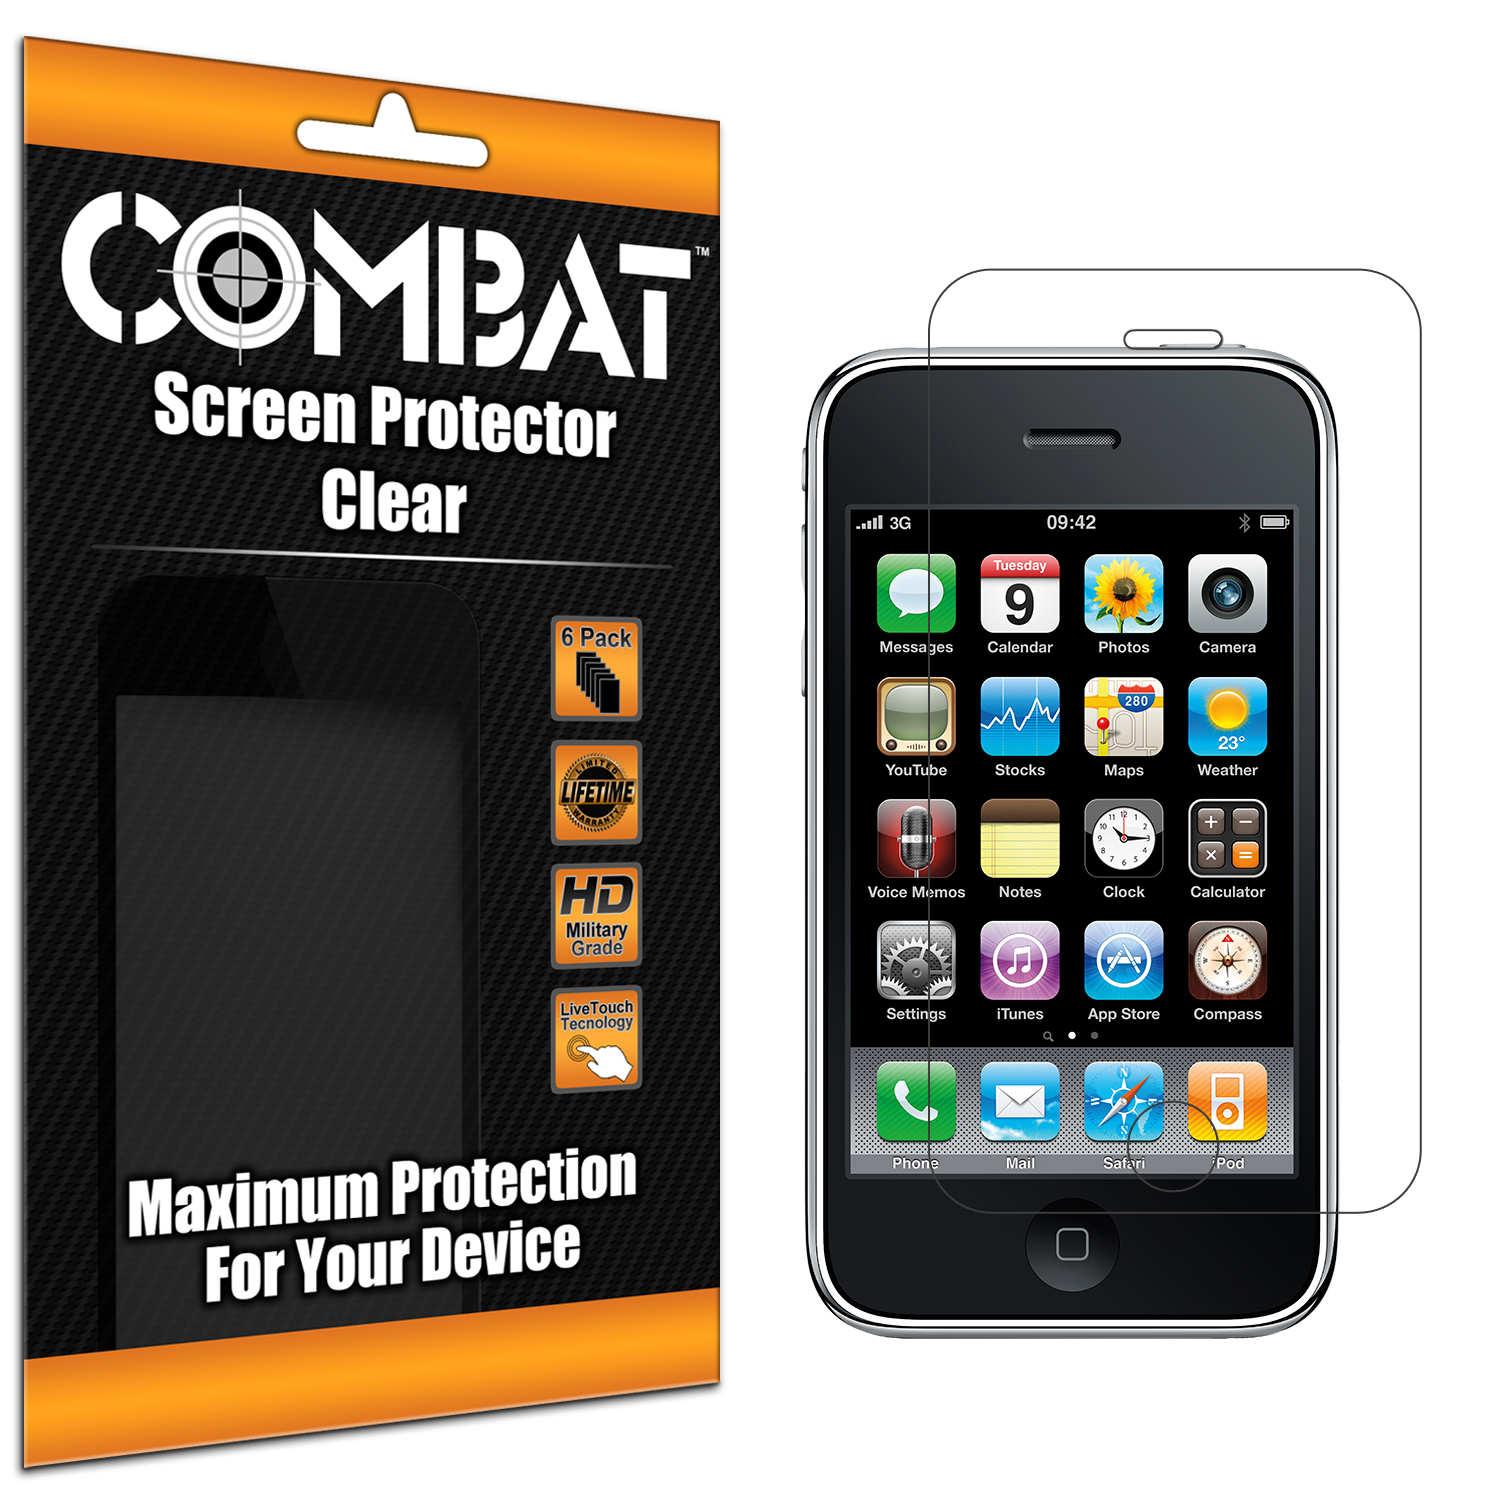 Apple iPhone 3G / 3GS Combat 6 Pack HD Clear Screen Protector